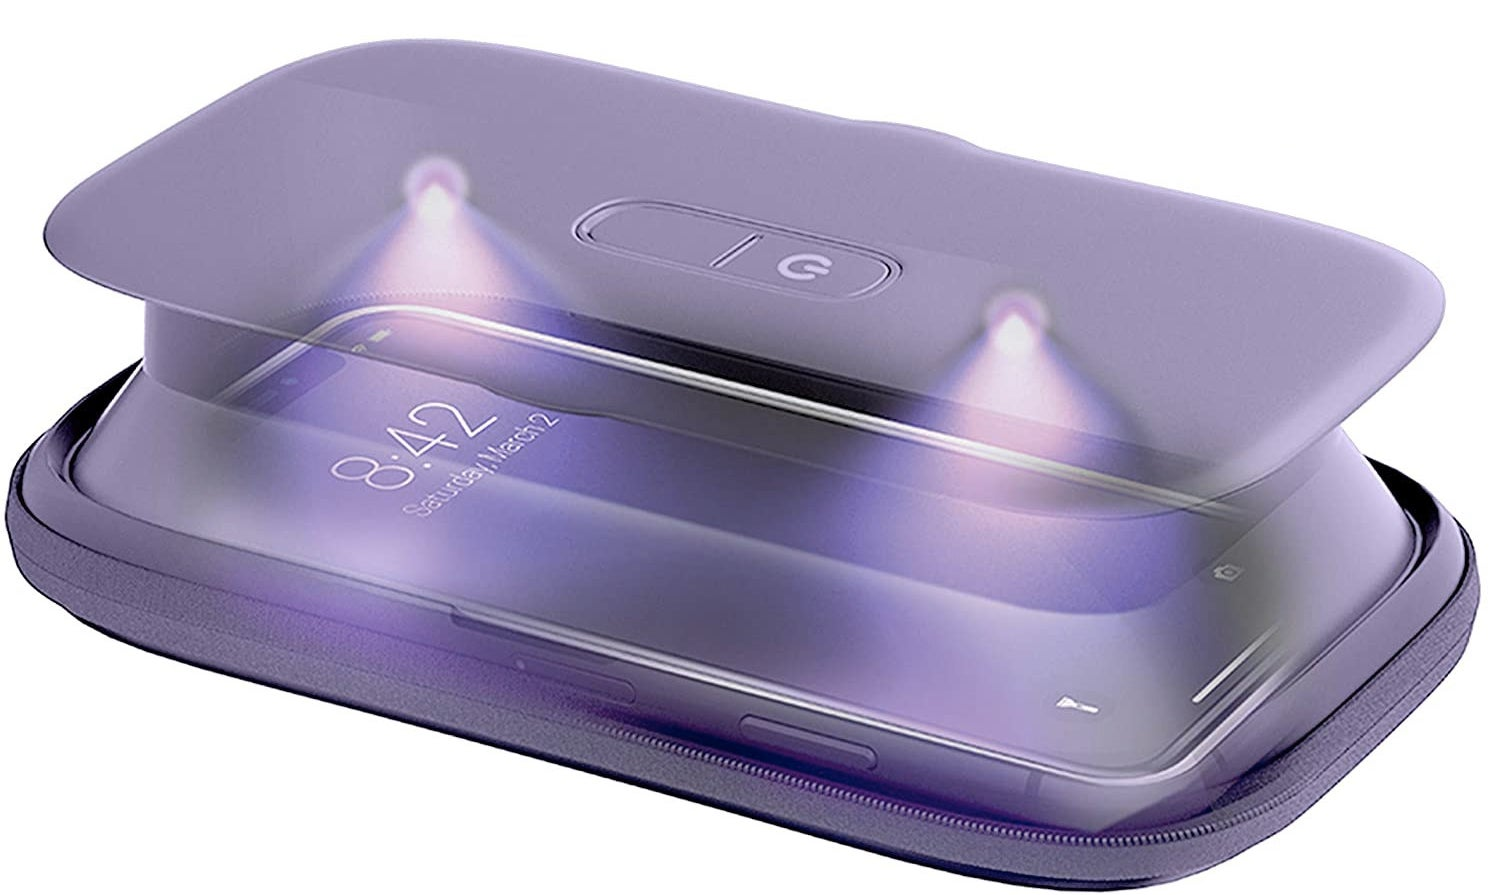 Phone-shaped box popped up to be a couple inches high, with outside power button and two interior UV lamps